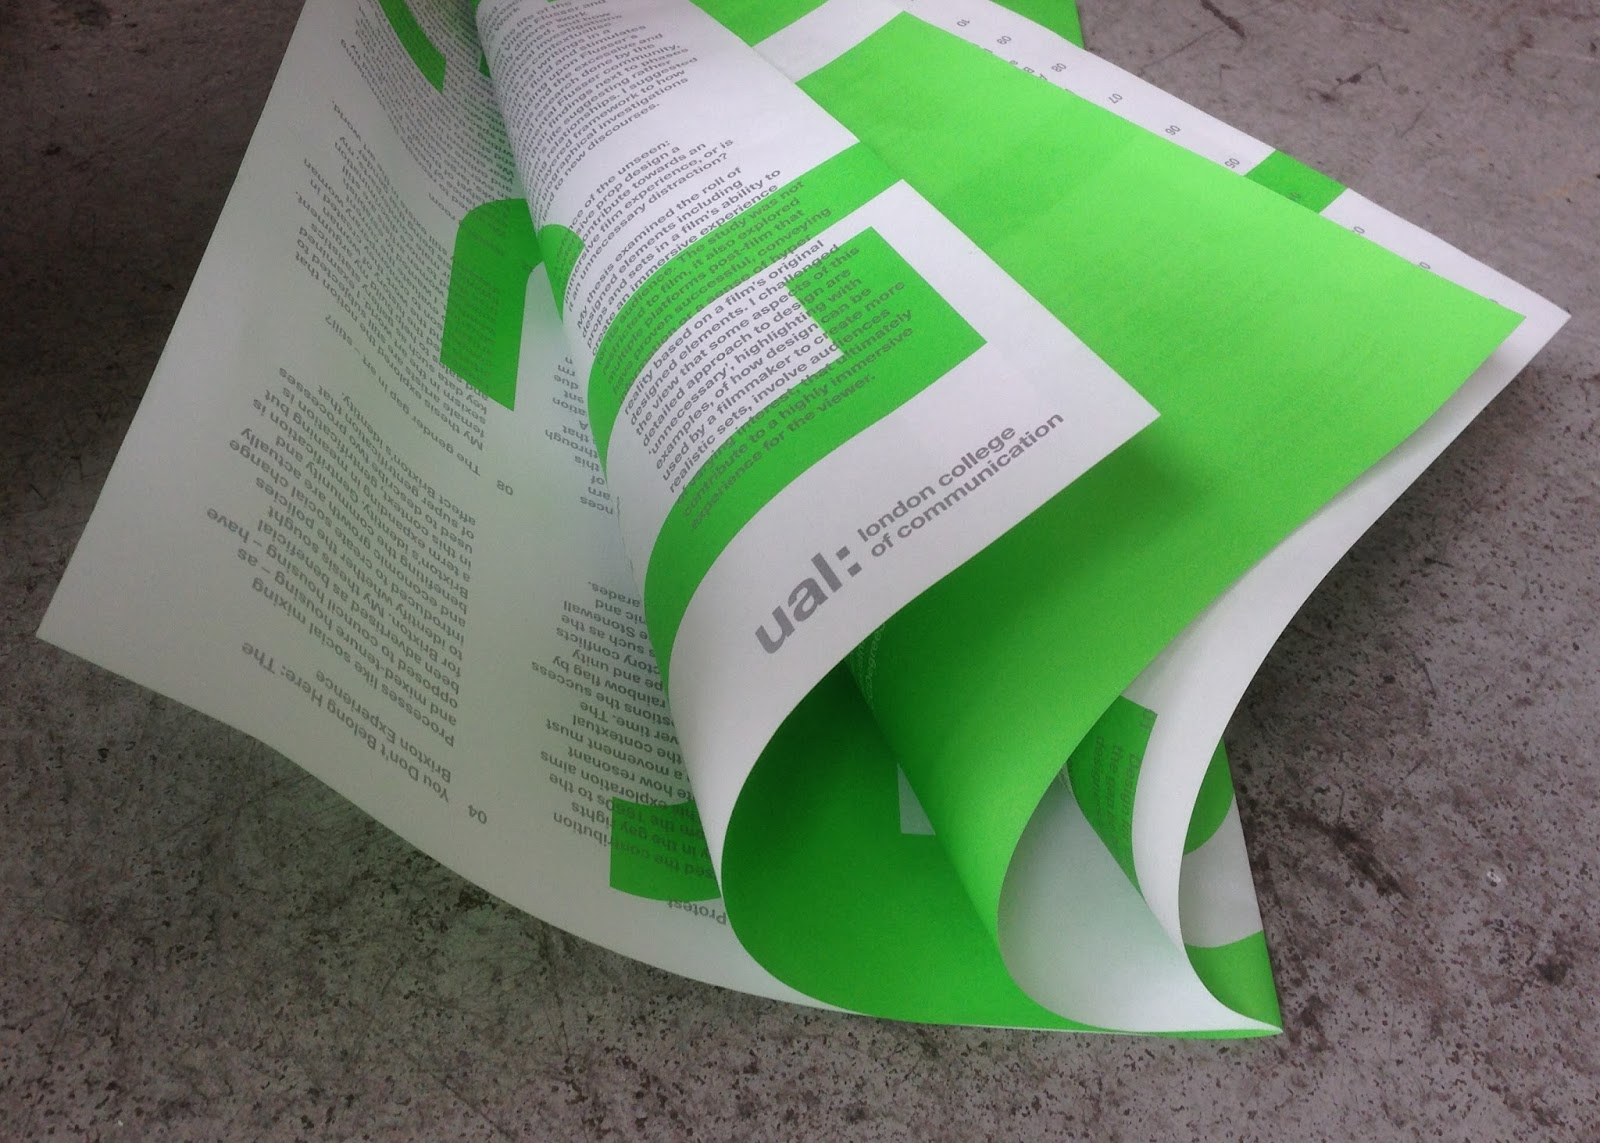 Justin 39 s amazing world at fenner paper thesis inform for Fachhochschule offenbach